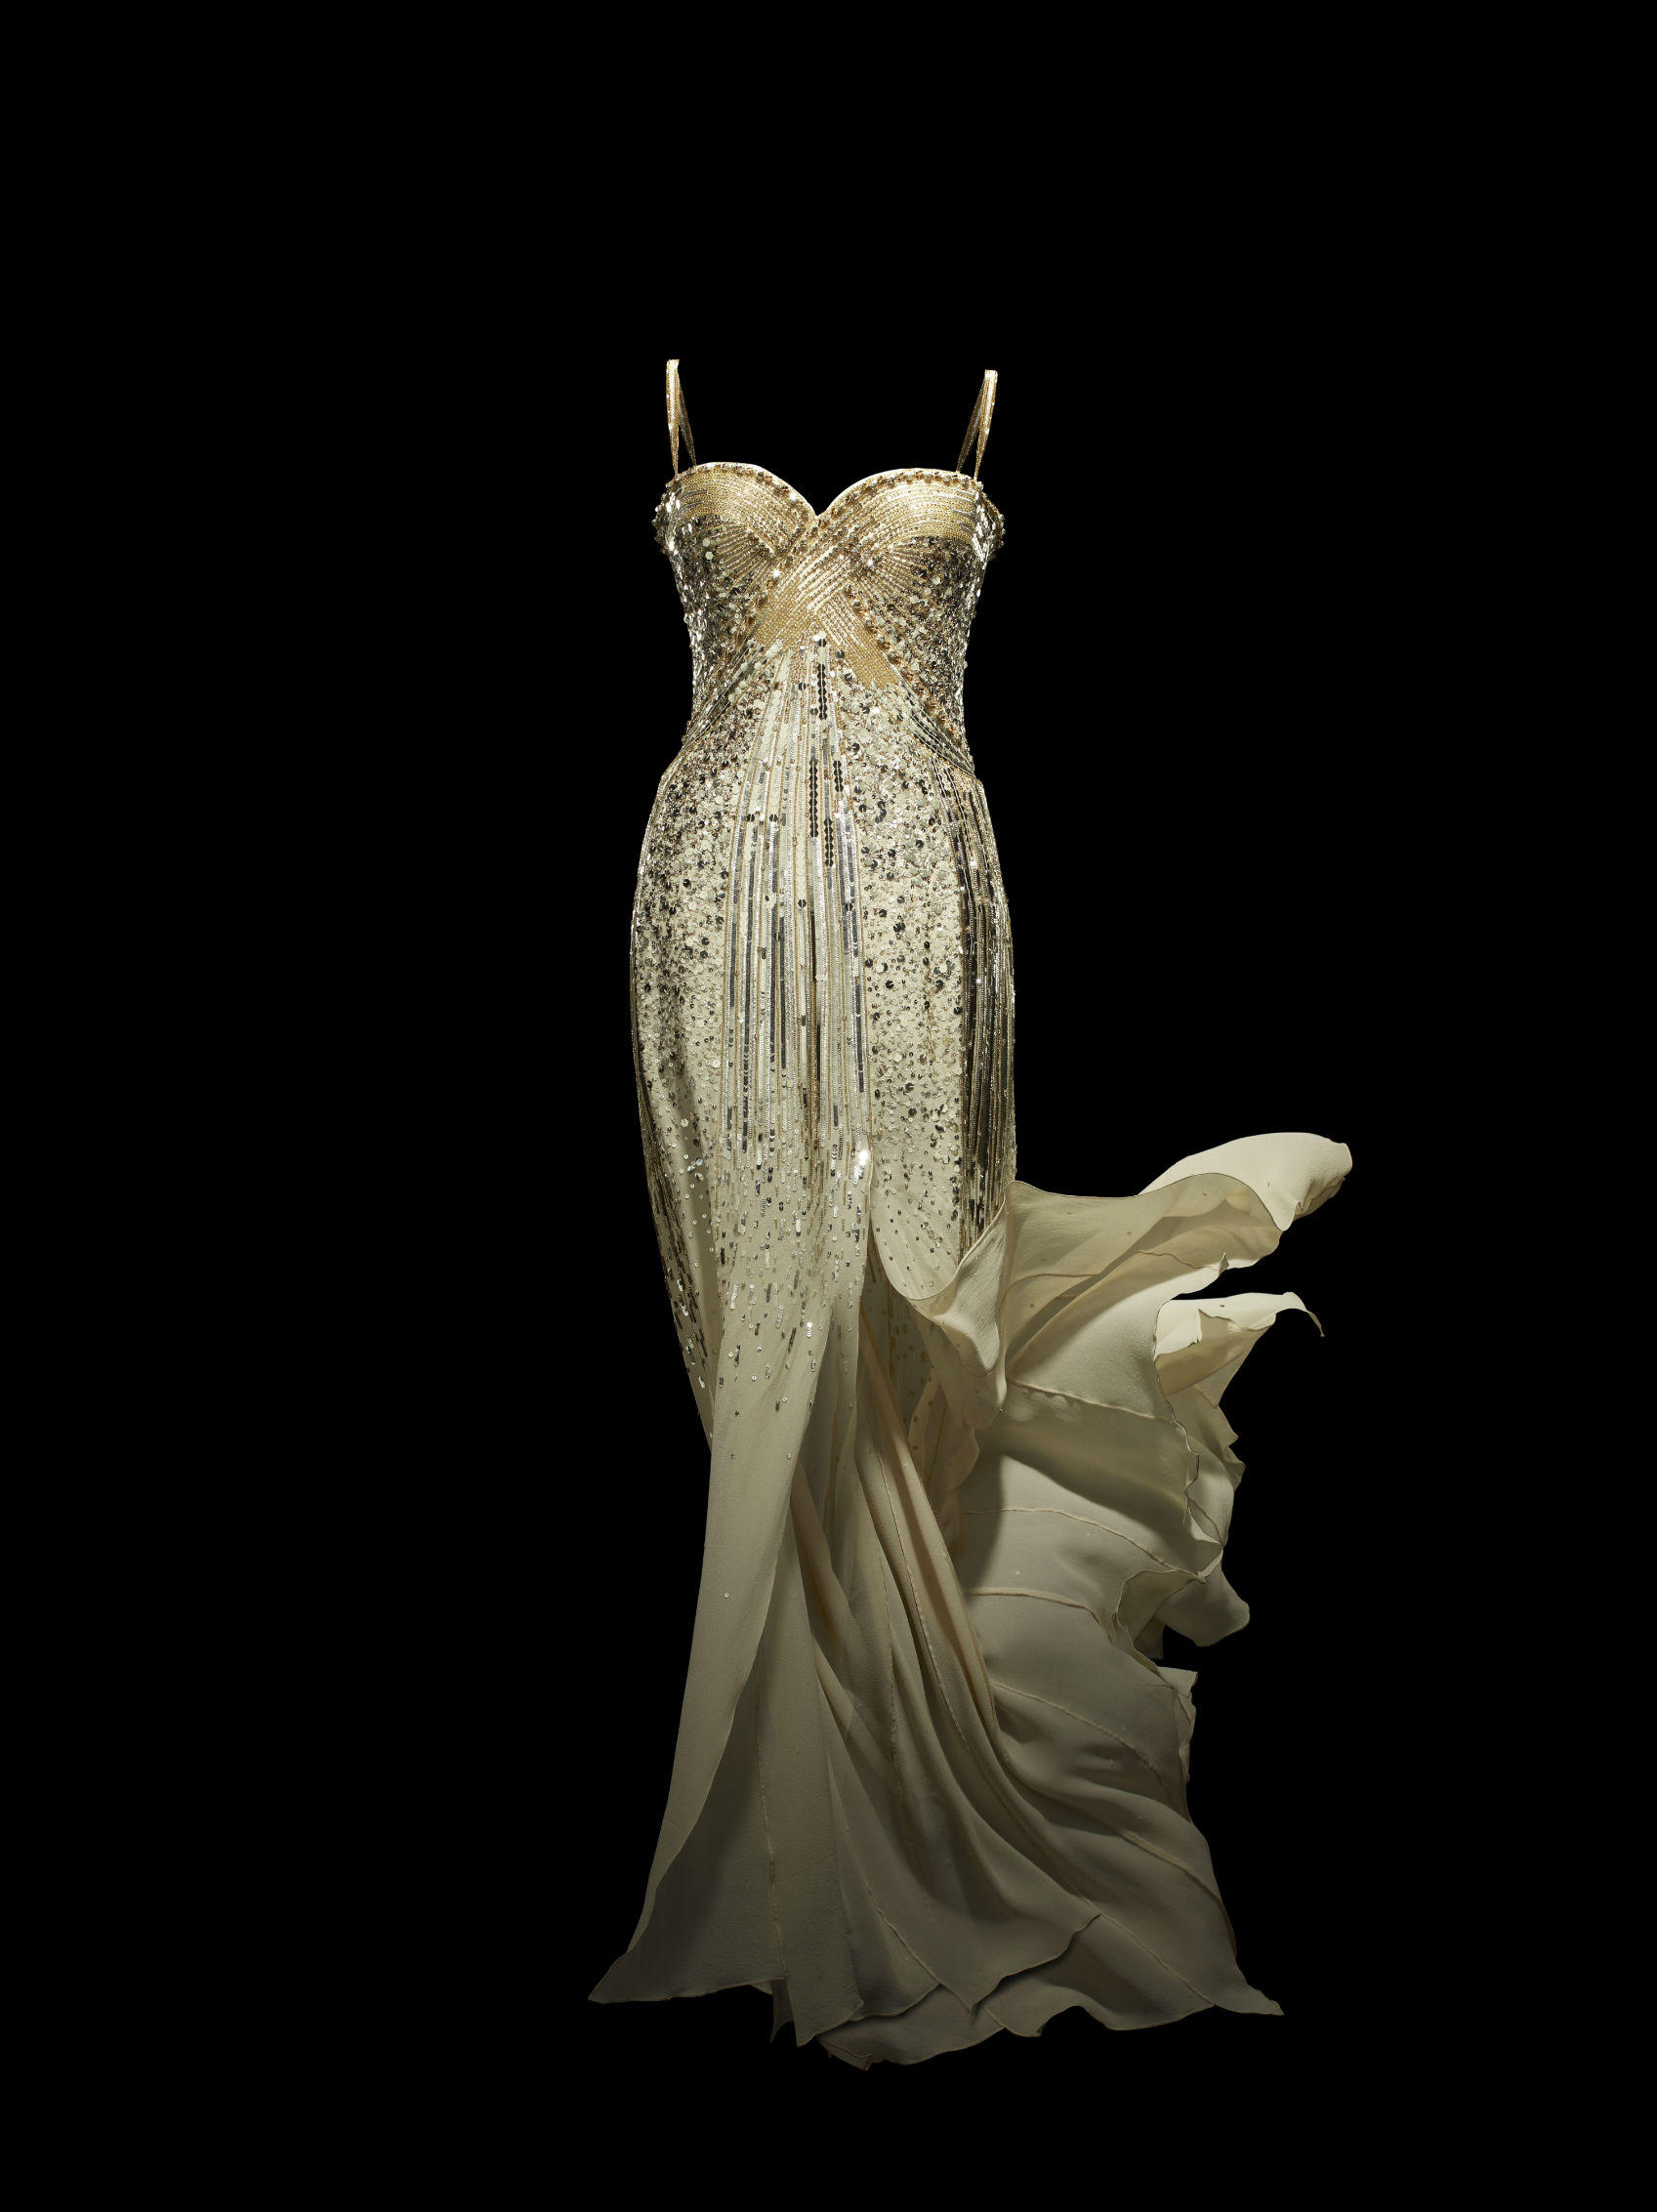 Christian Dior by John Galliano, J'adore, Dress, Haute Couture, 2008 (custom-made) Photo © Laziz Hamani. Christian Dior Parfums collection, Paris